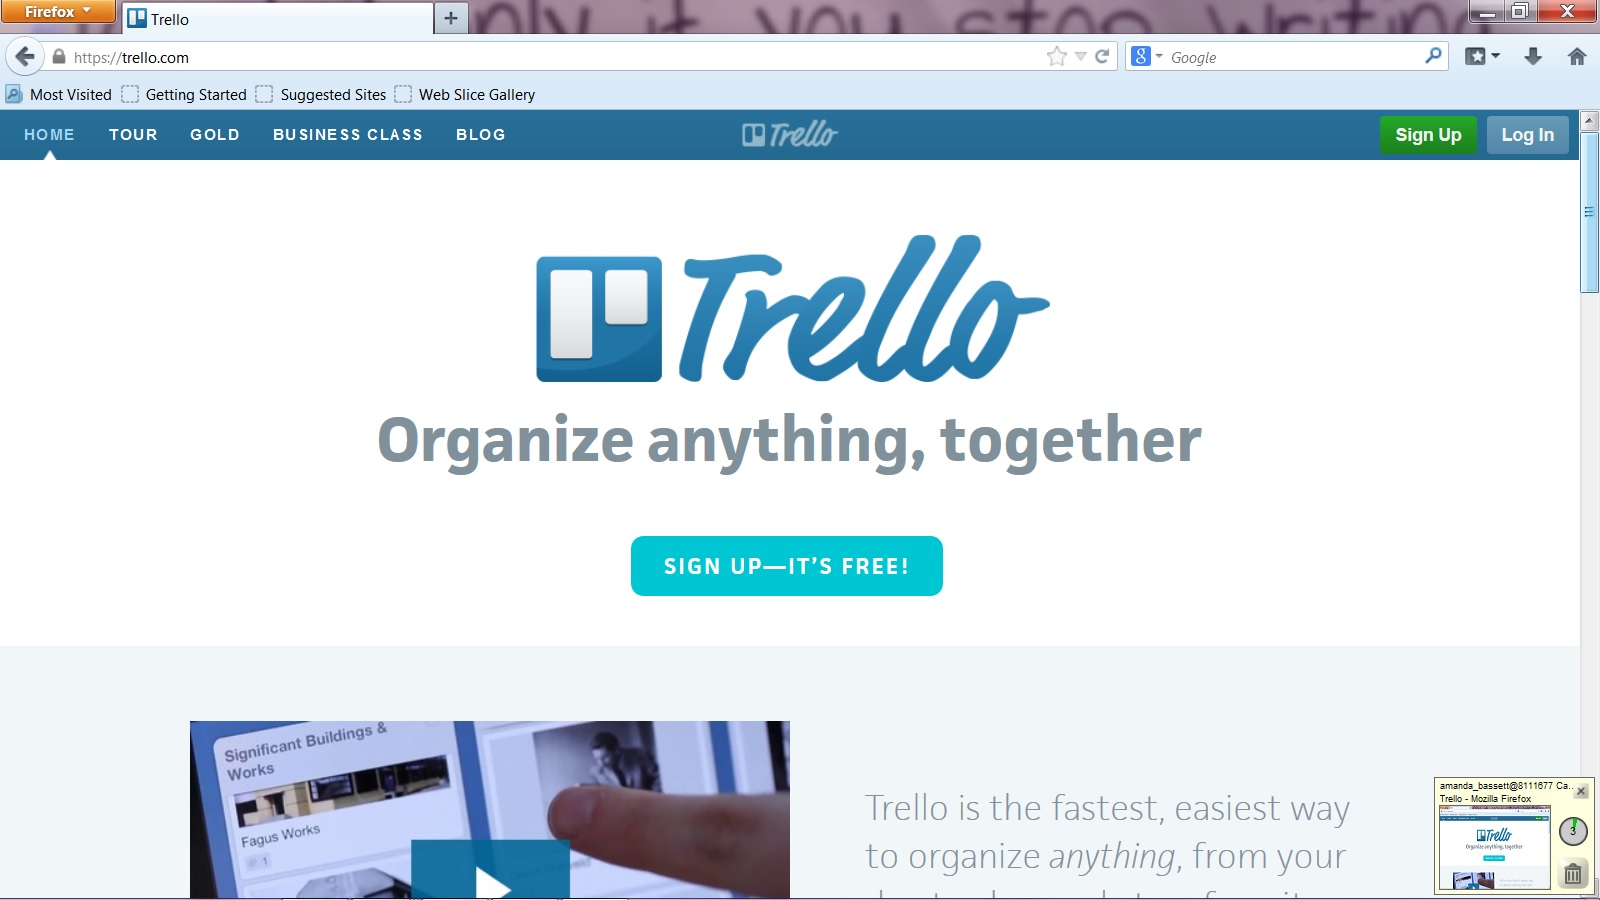 Trello - Sign up, it's free.jpg